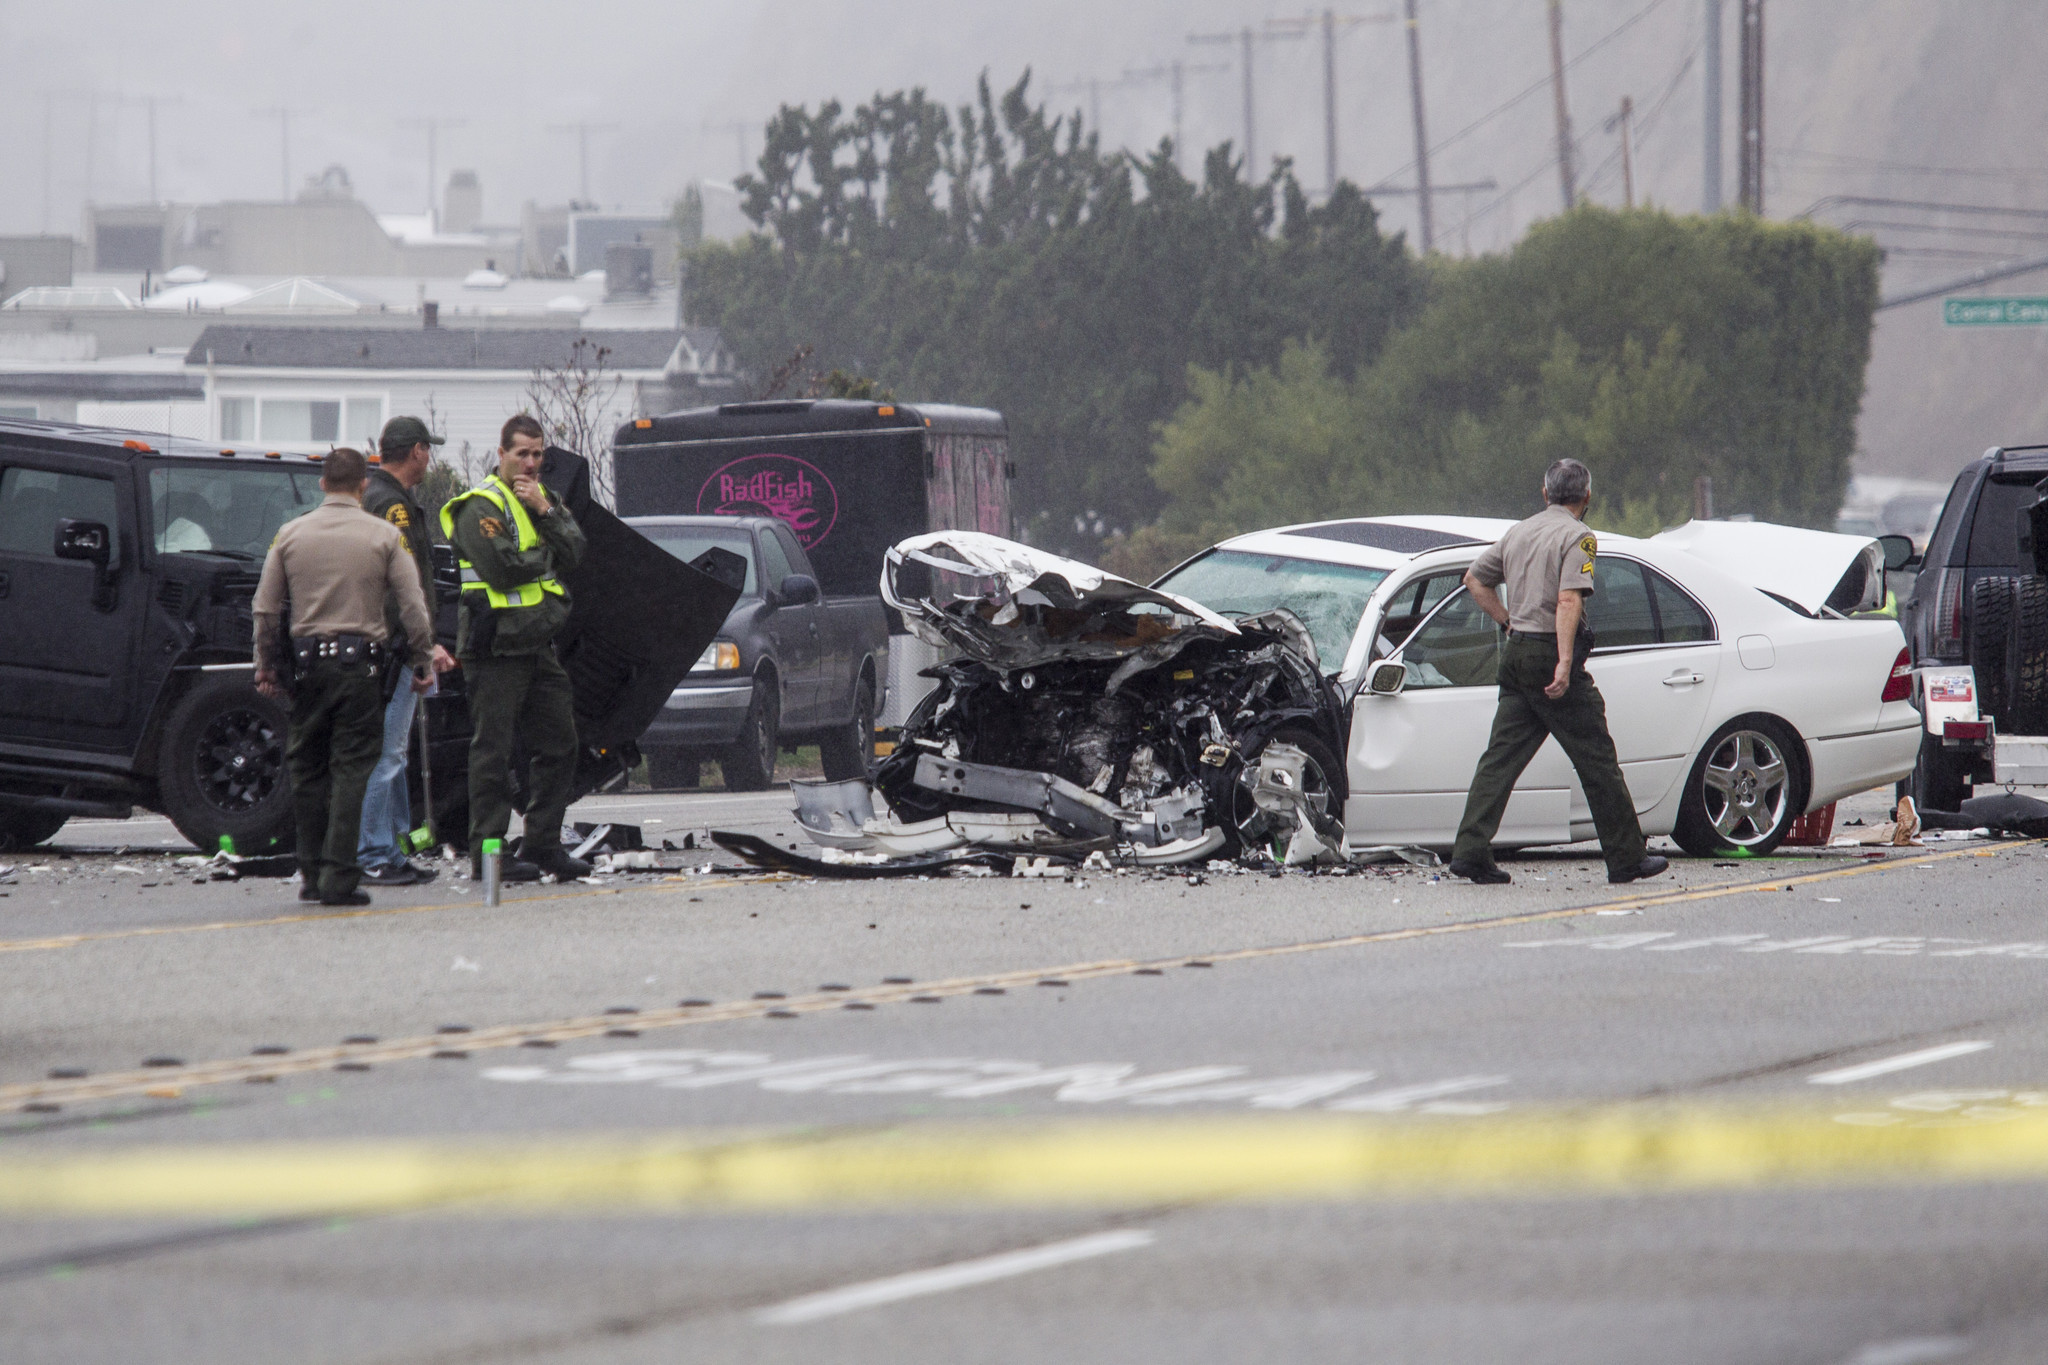 Source: Video Shows Bruce Jenner Hit Two Cars In Fatal PCH